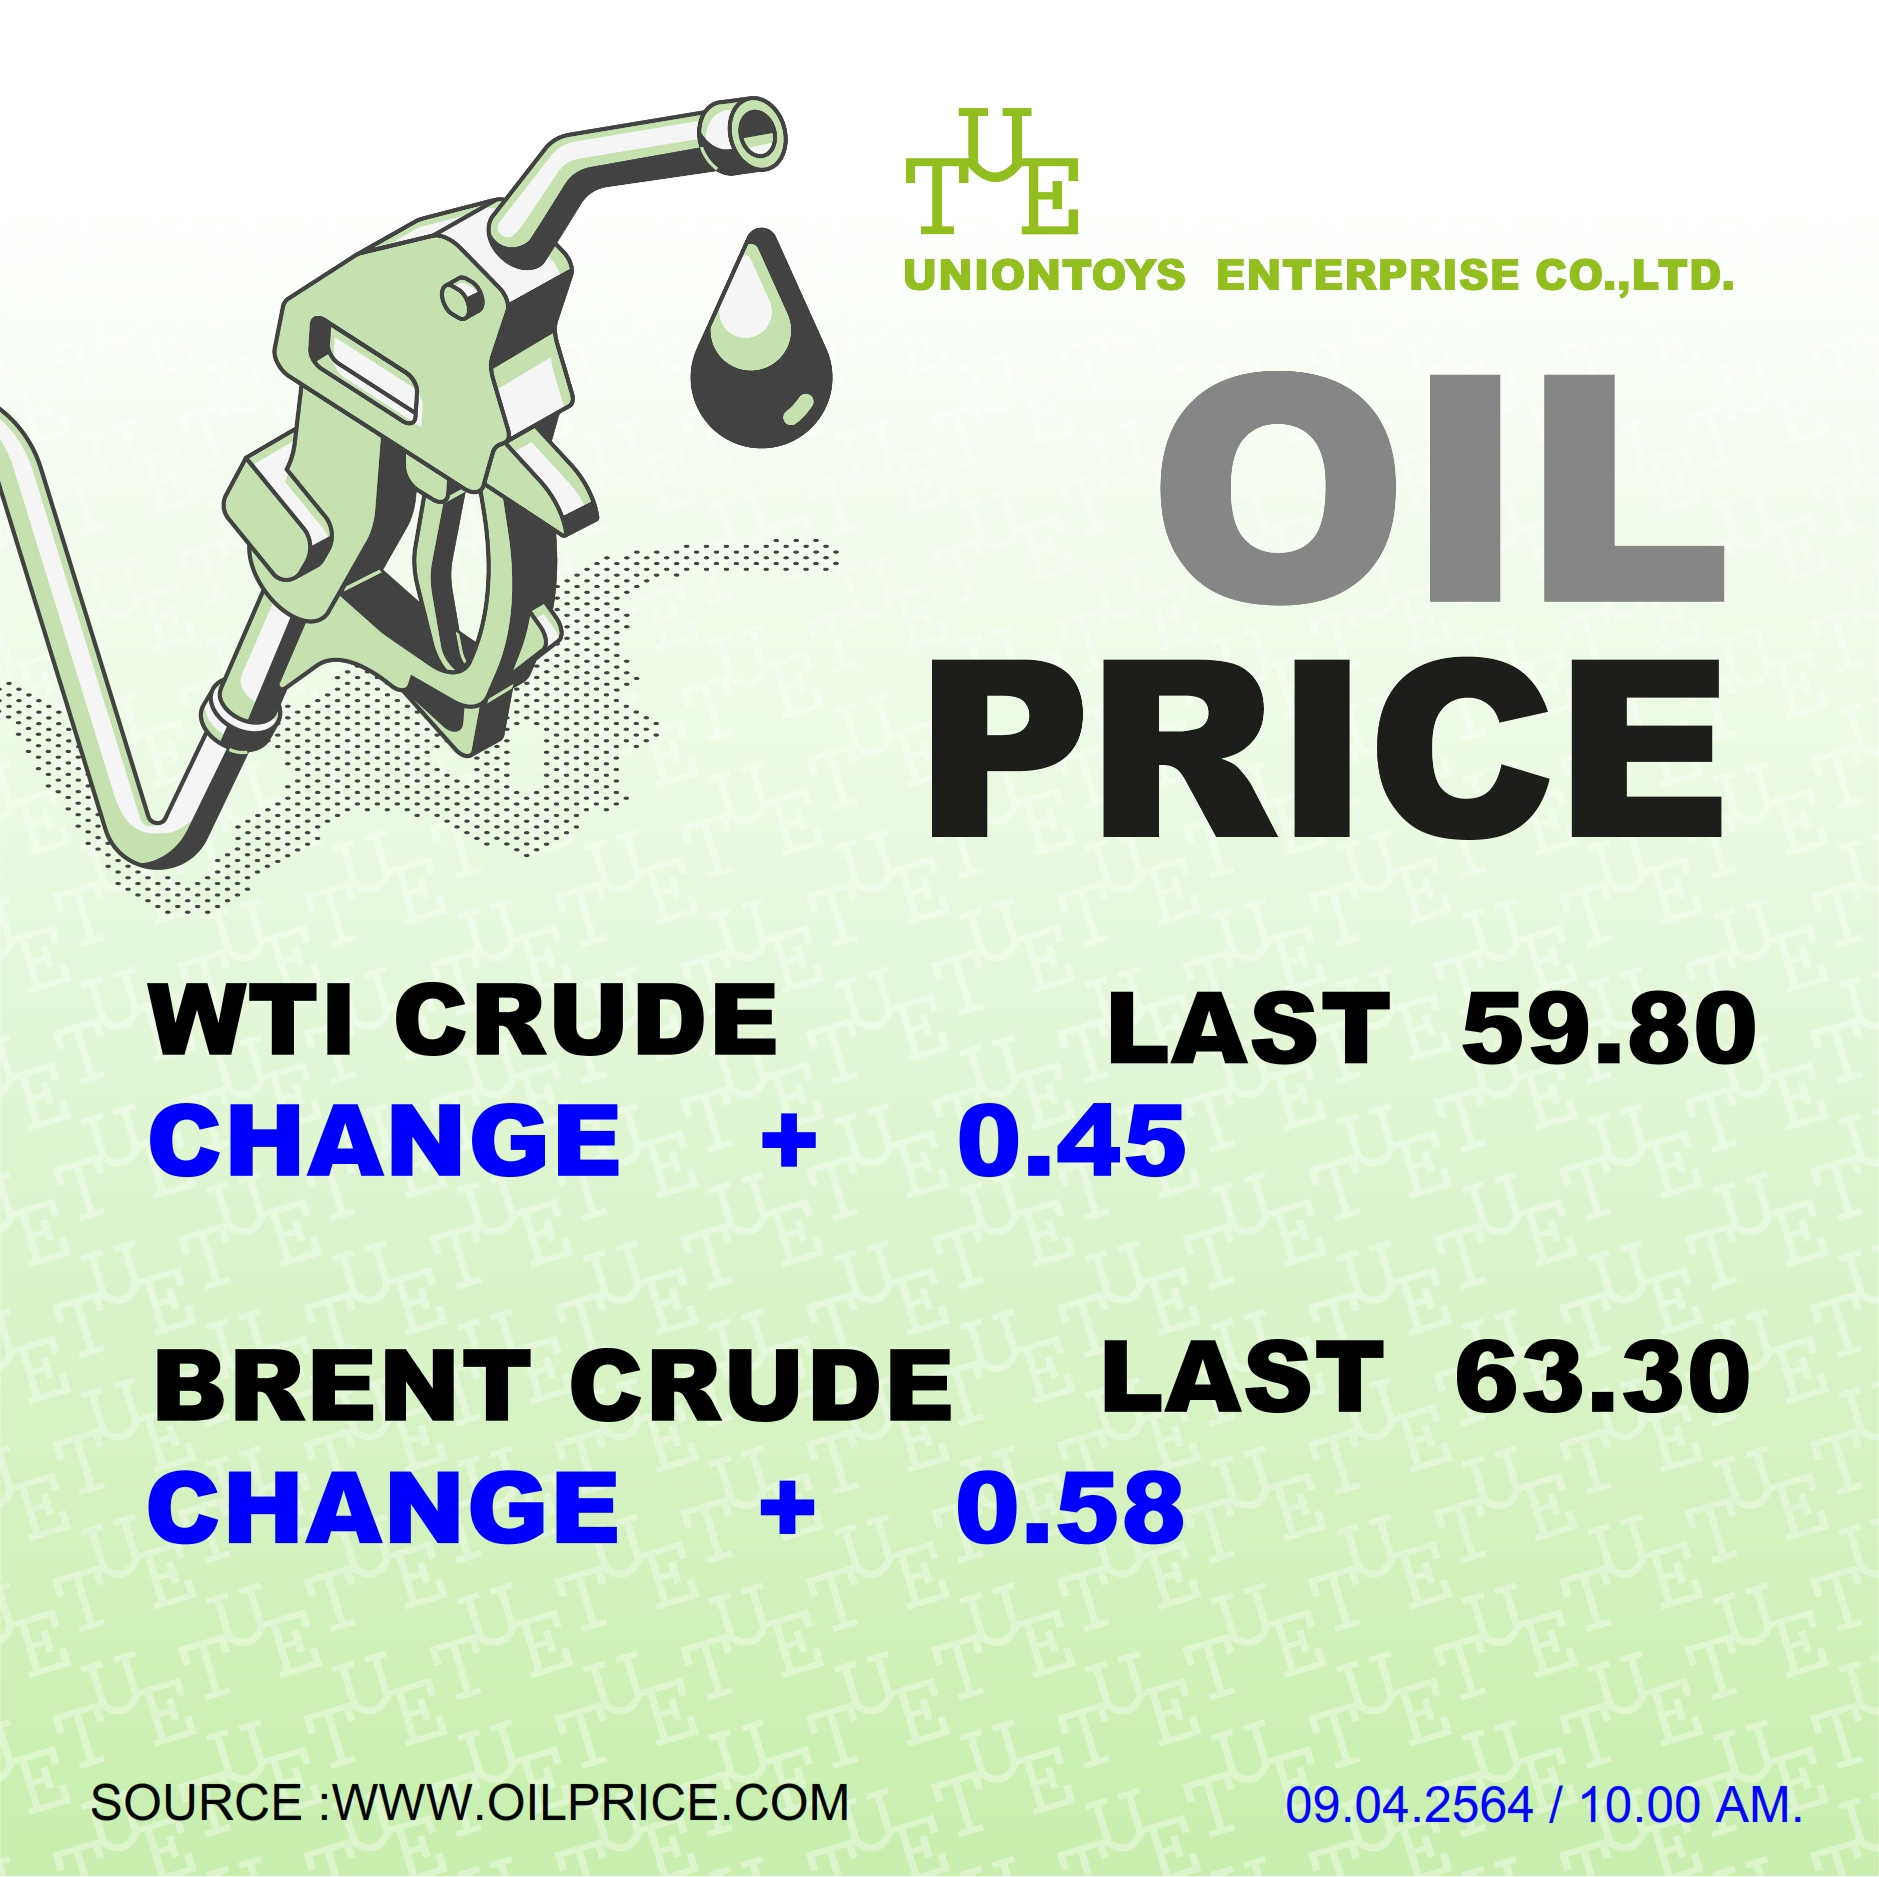 Uniontoys Oil Price Update - 11-04-2021